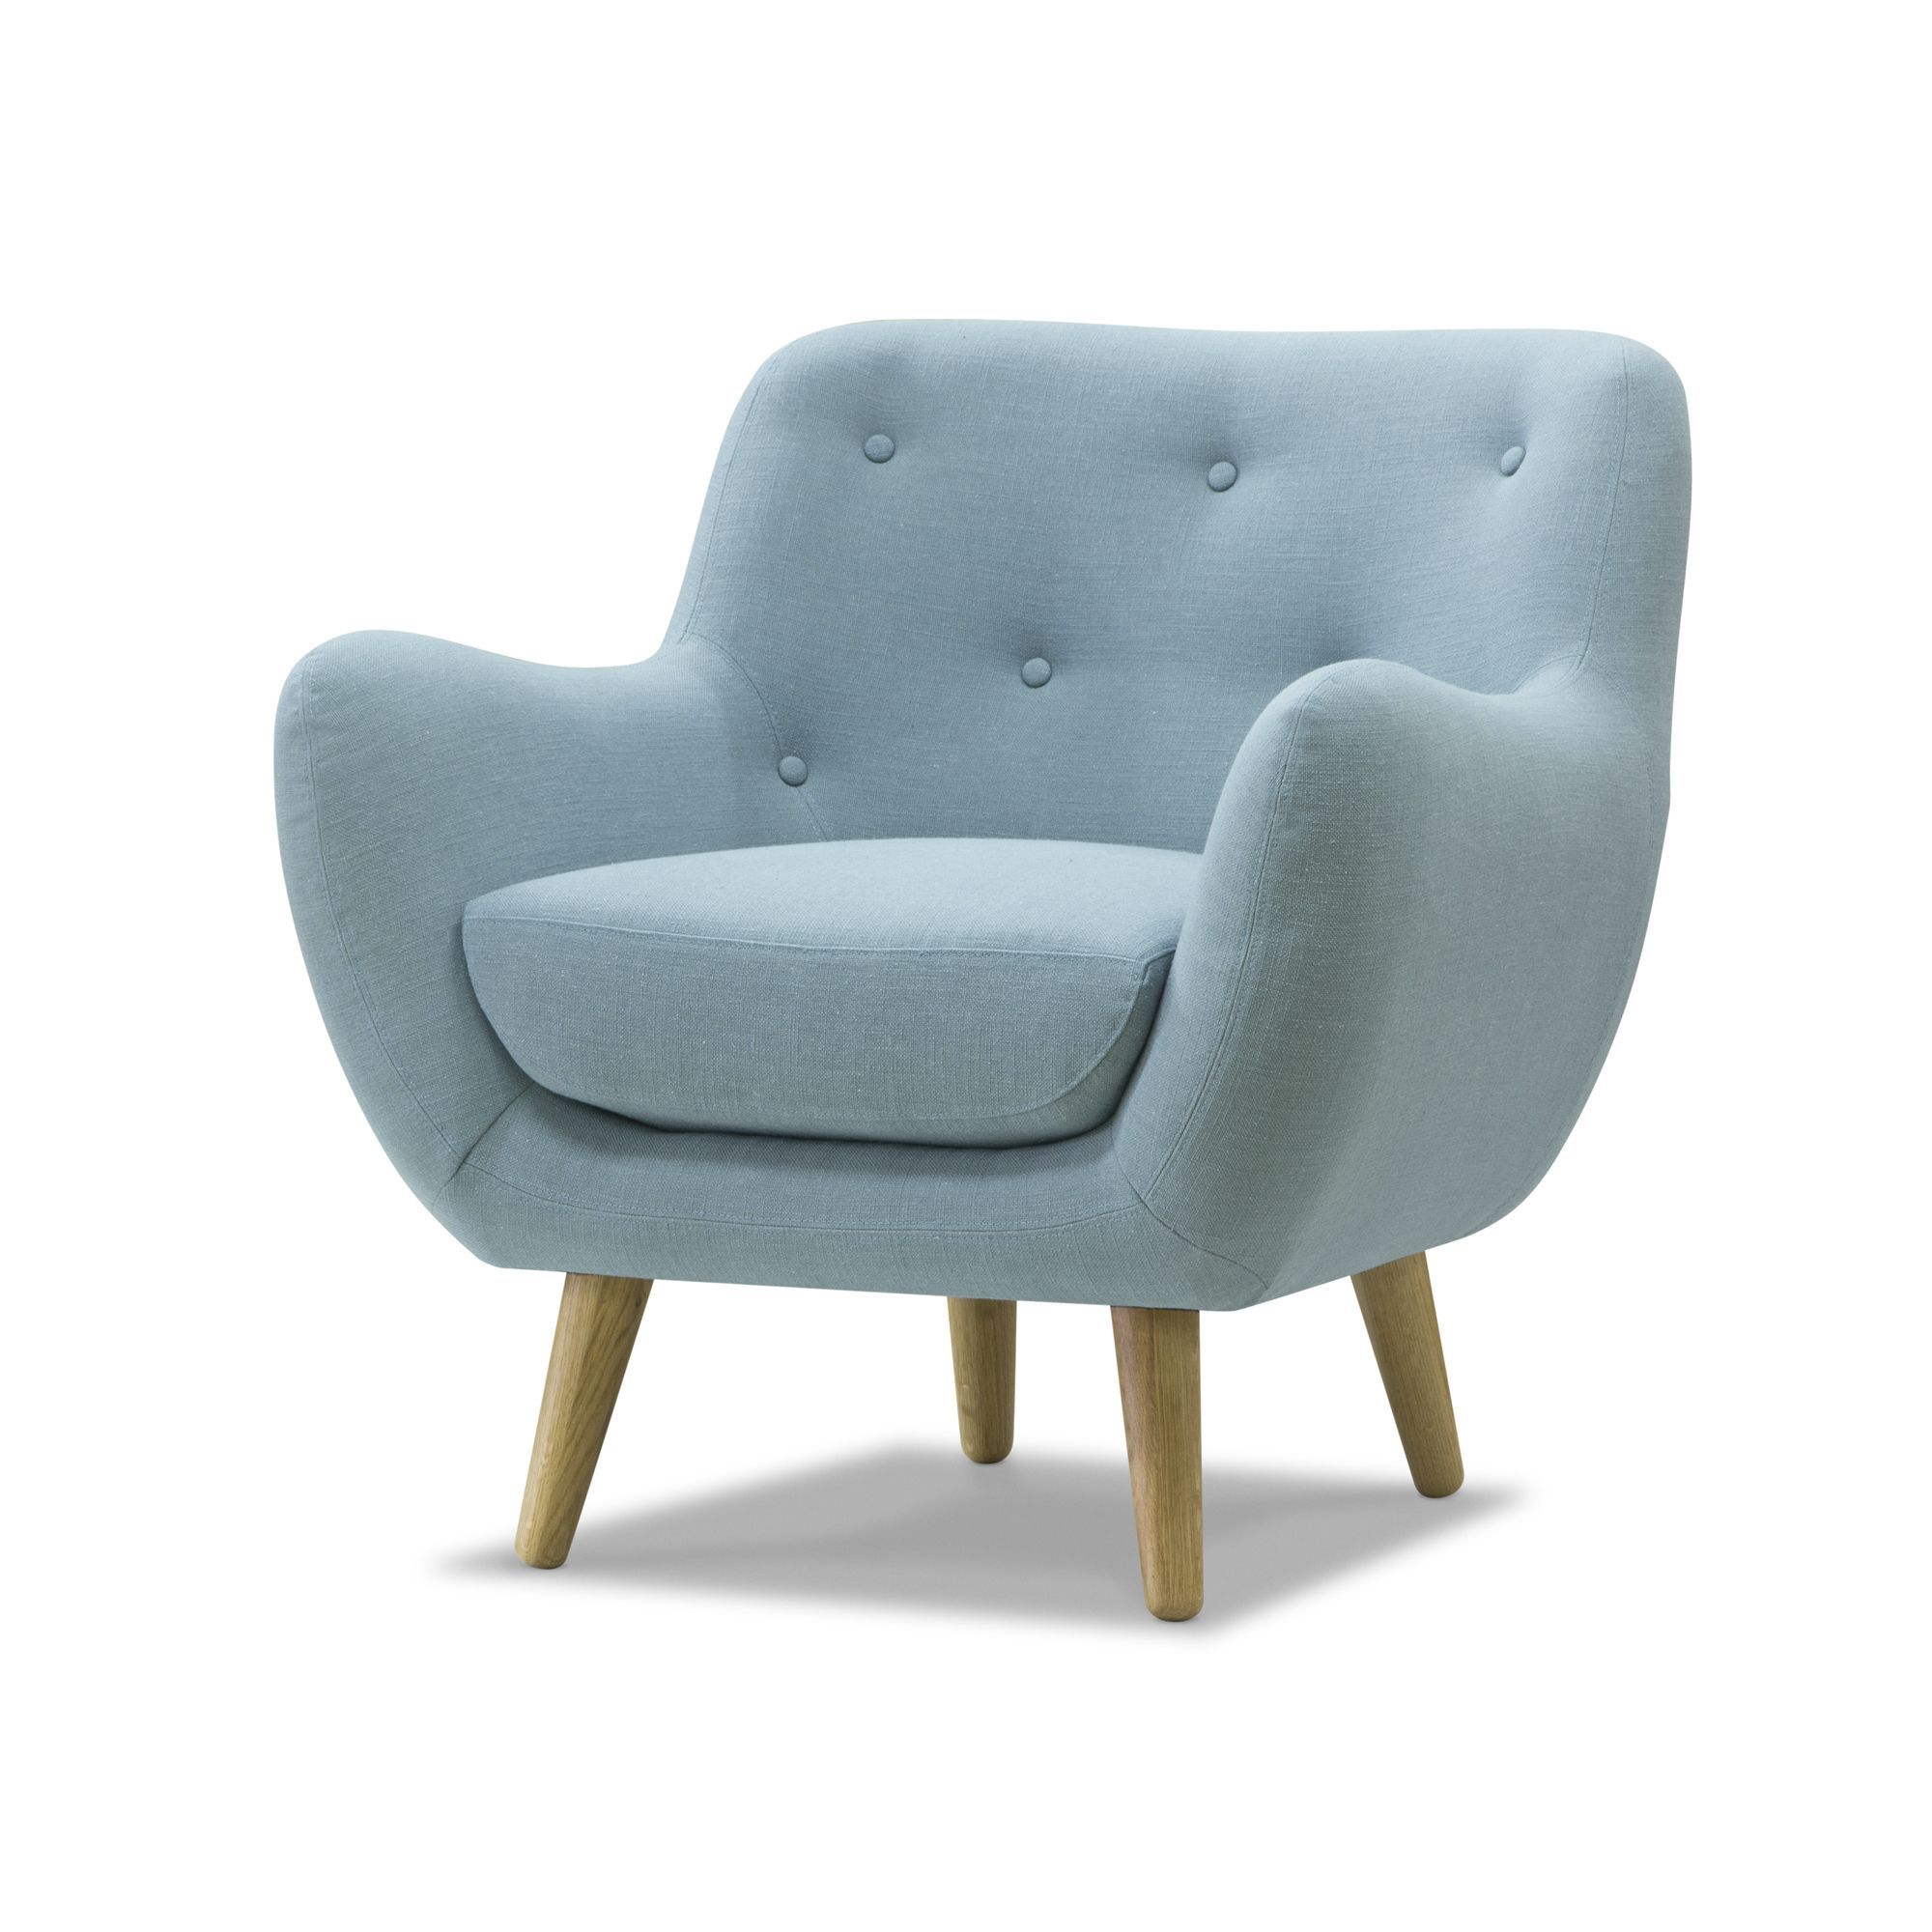 poppy meuble fauteuil esprit scandinave bleu pouf salon tissu bleu et ciel bleu. Black Bedroom Furniture Sets. Home Design Ideas